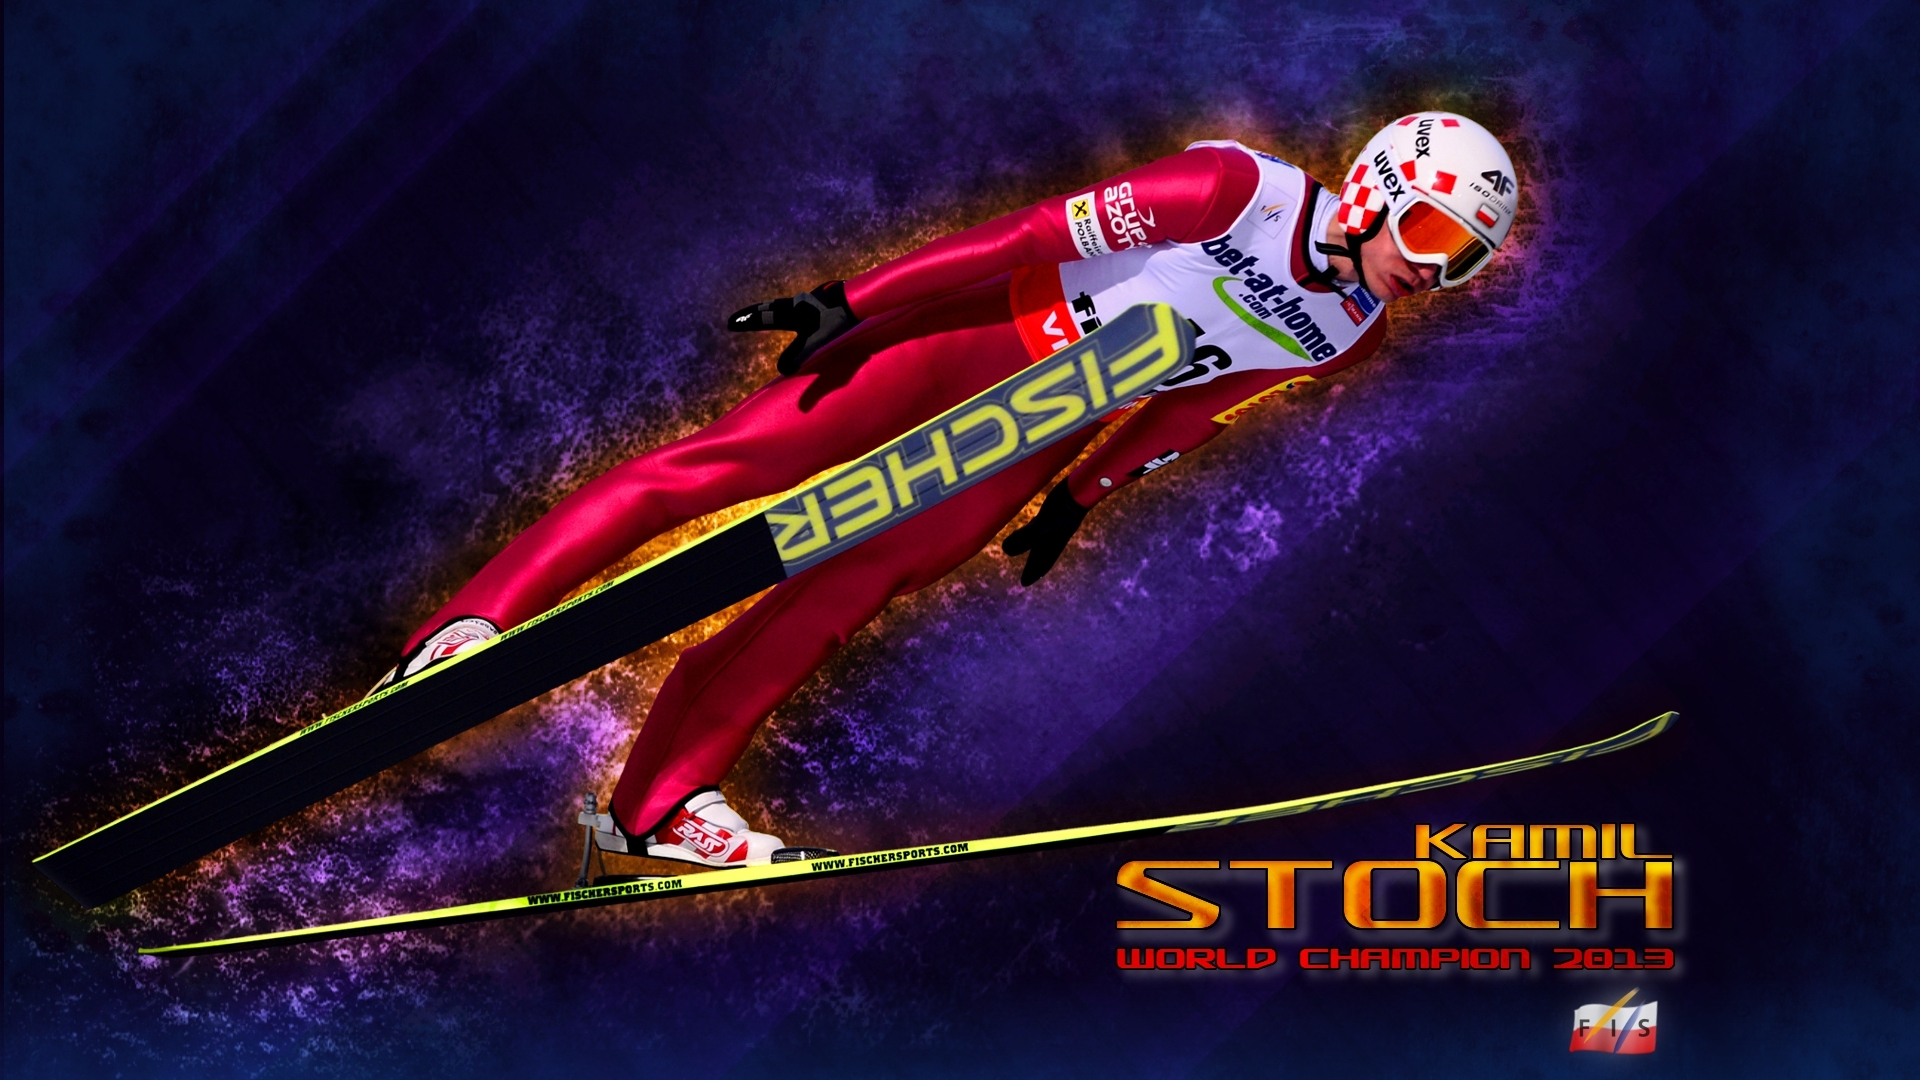 1920x1080 - Kamil Stoch Wallpapers 1